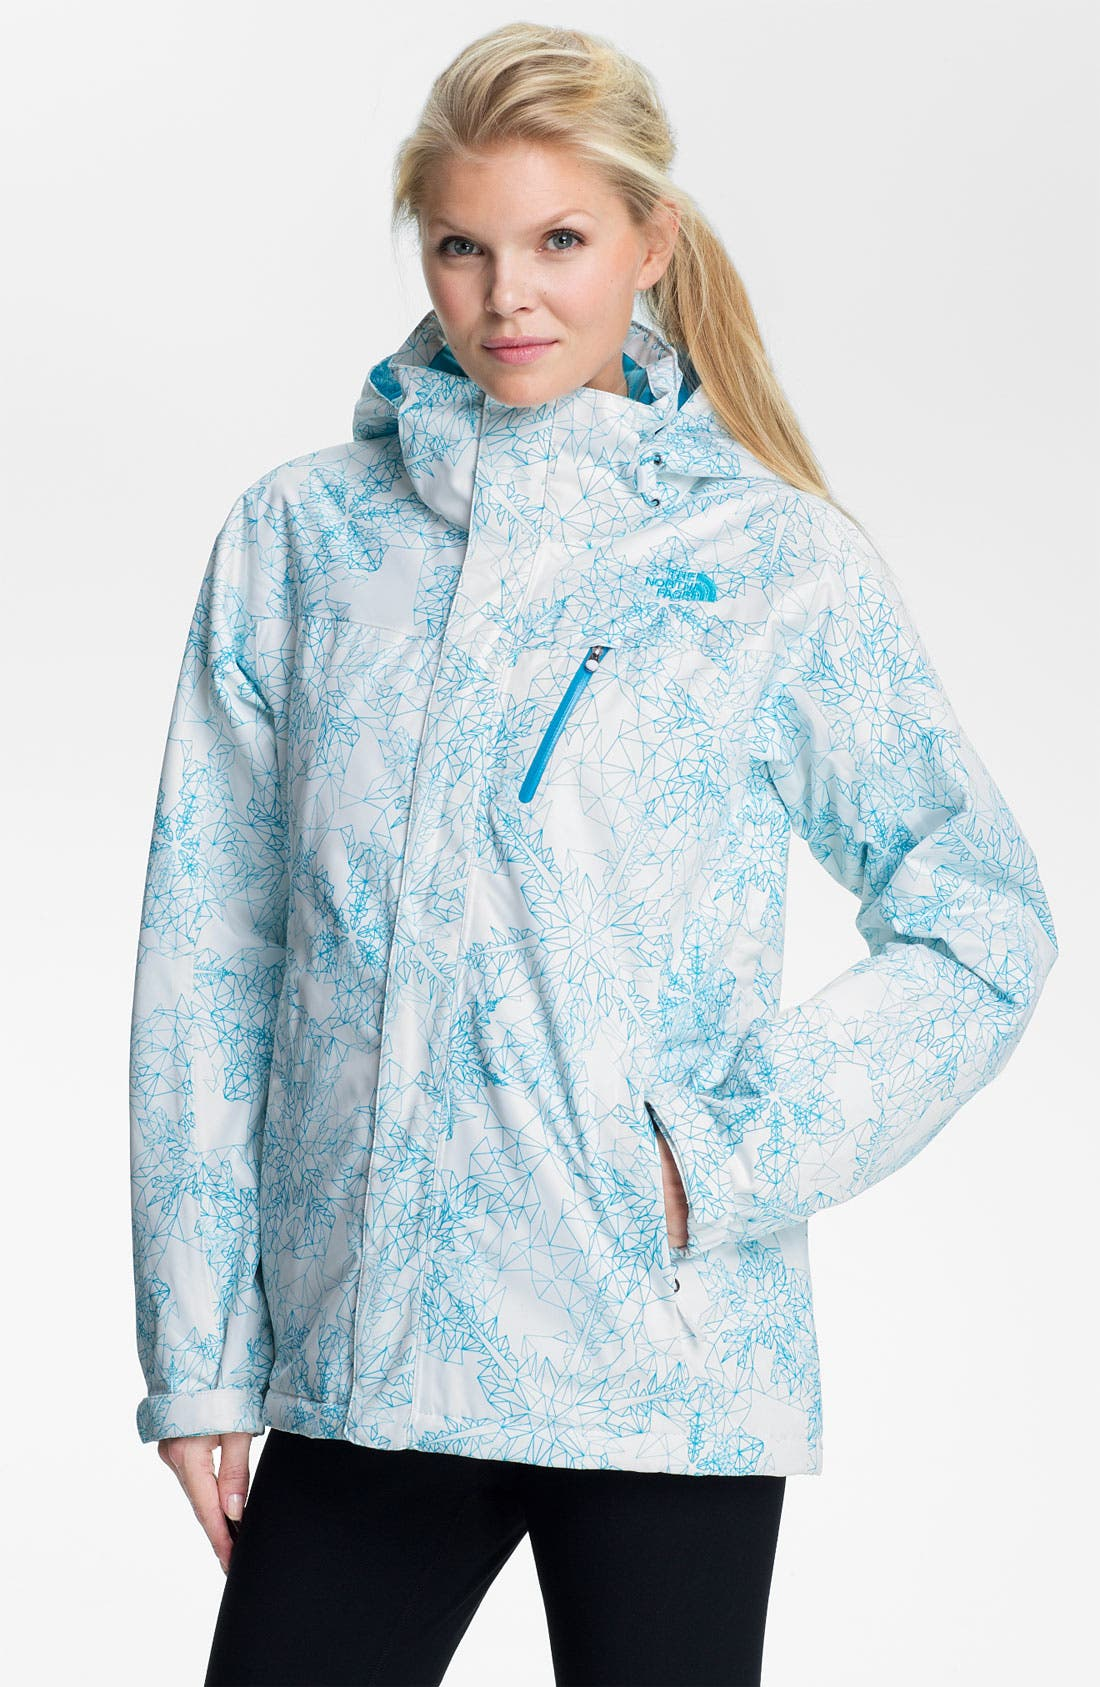 Main Image - The North Face 'Snow Cougar' Print Jacket